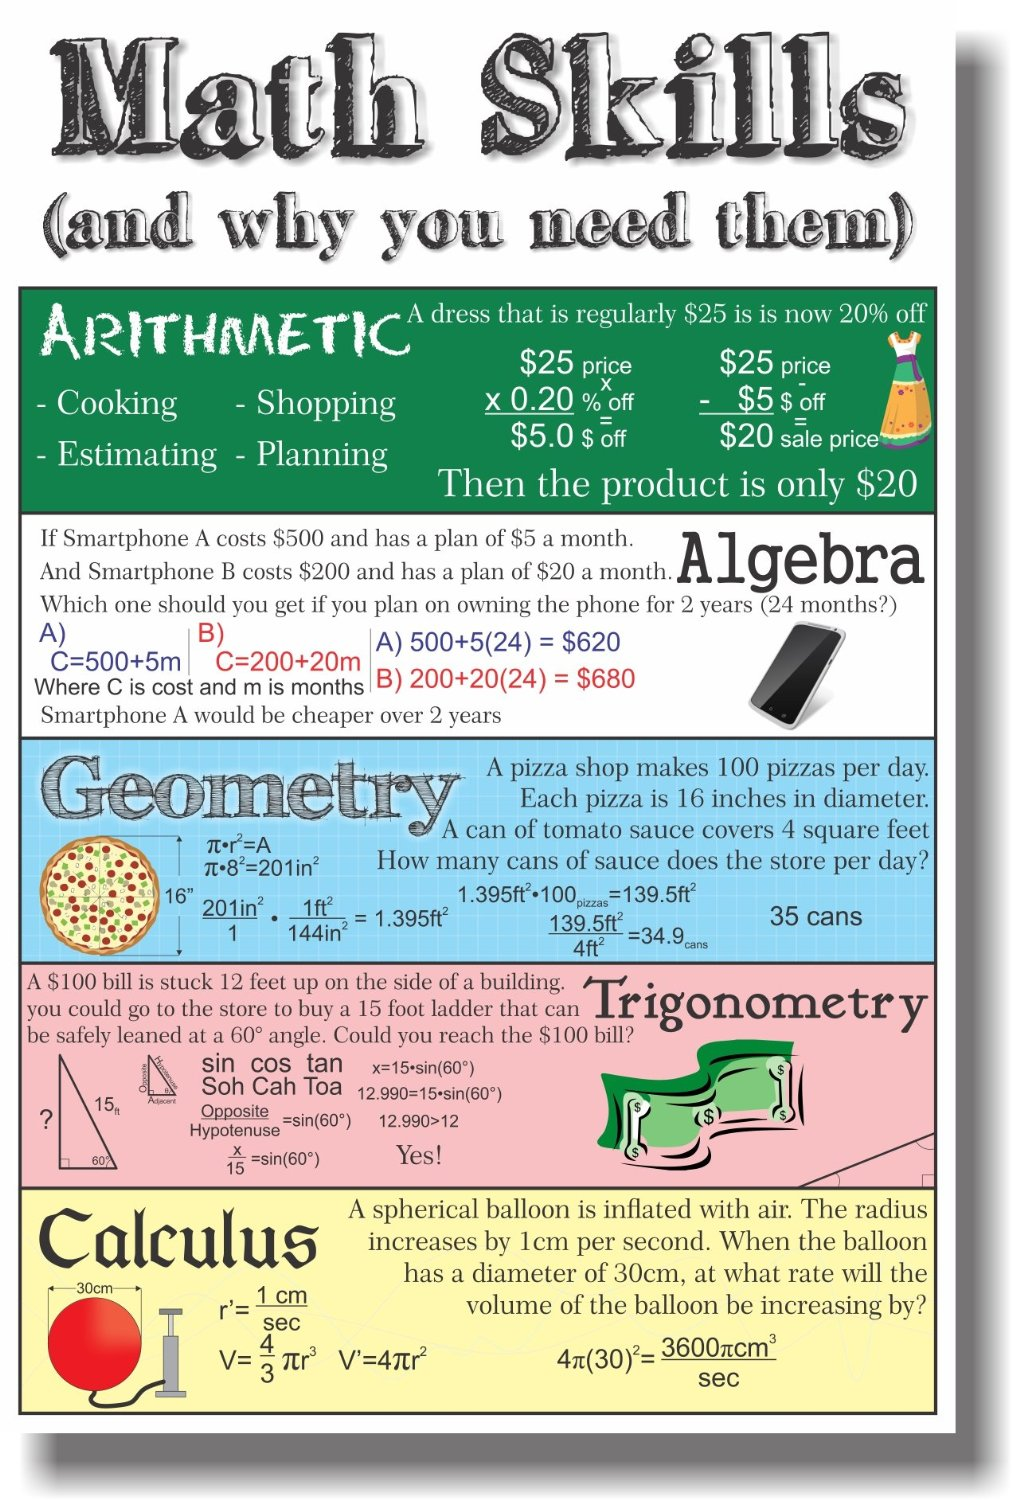 buy math skills new classroom math poster in cheap price on